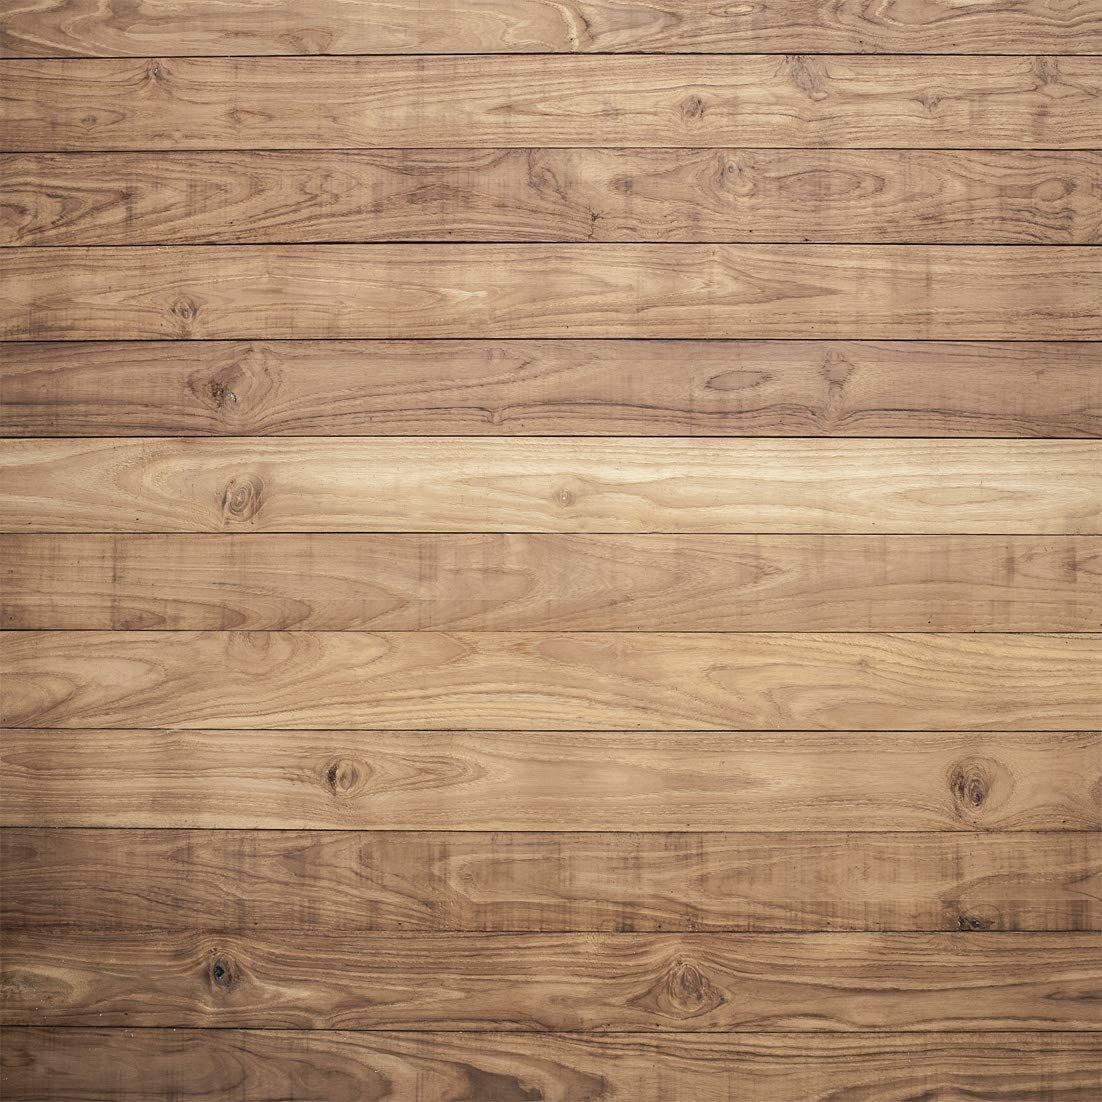 LYWYGG 10x10ft Wooden Backdrop Baby Shower Backdrops Party Decorations Backdrops Props for Studio for Photographers Retro Wood Wall Background Cloth Seamless CP-176-1010